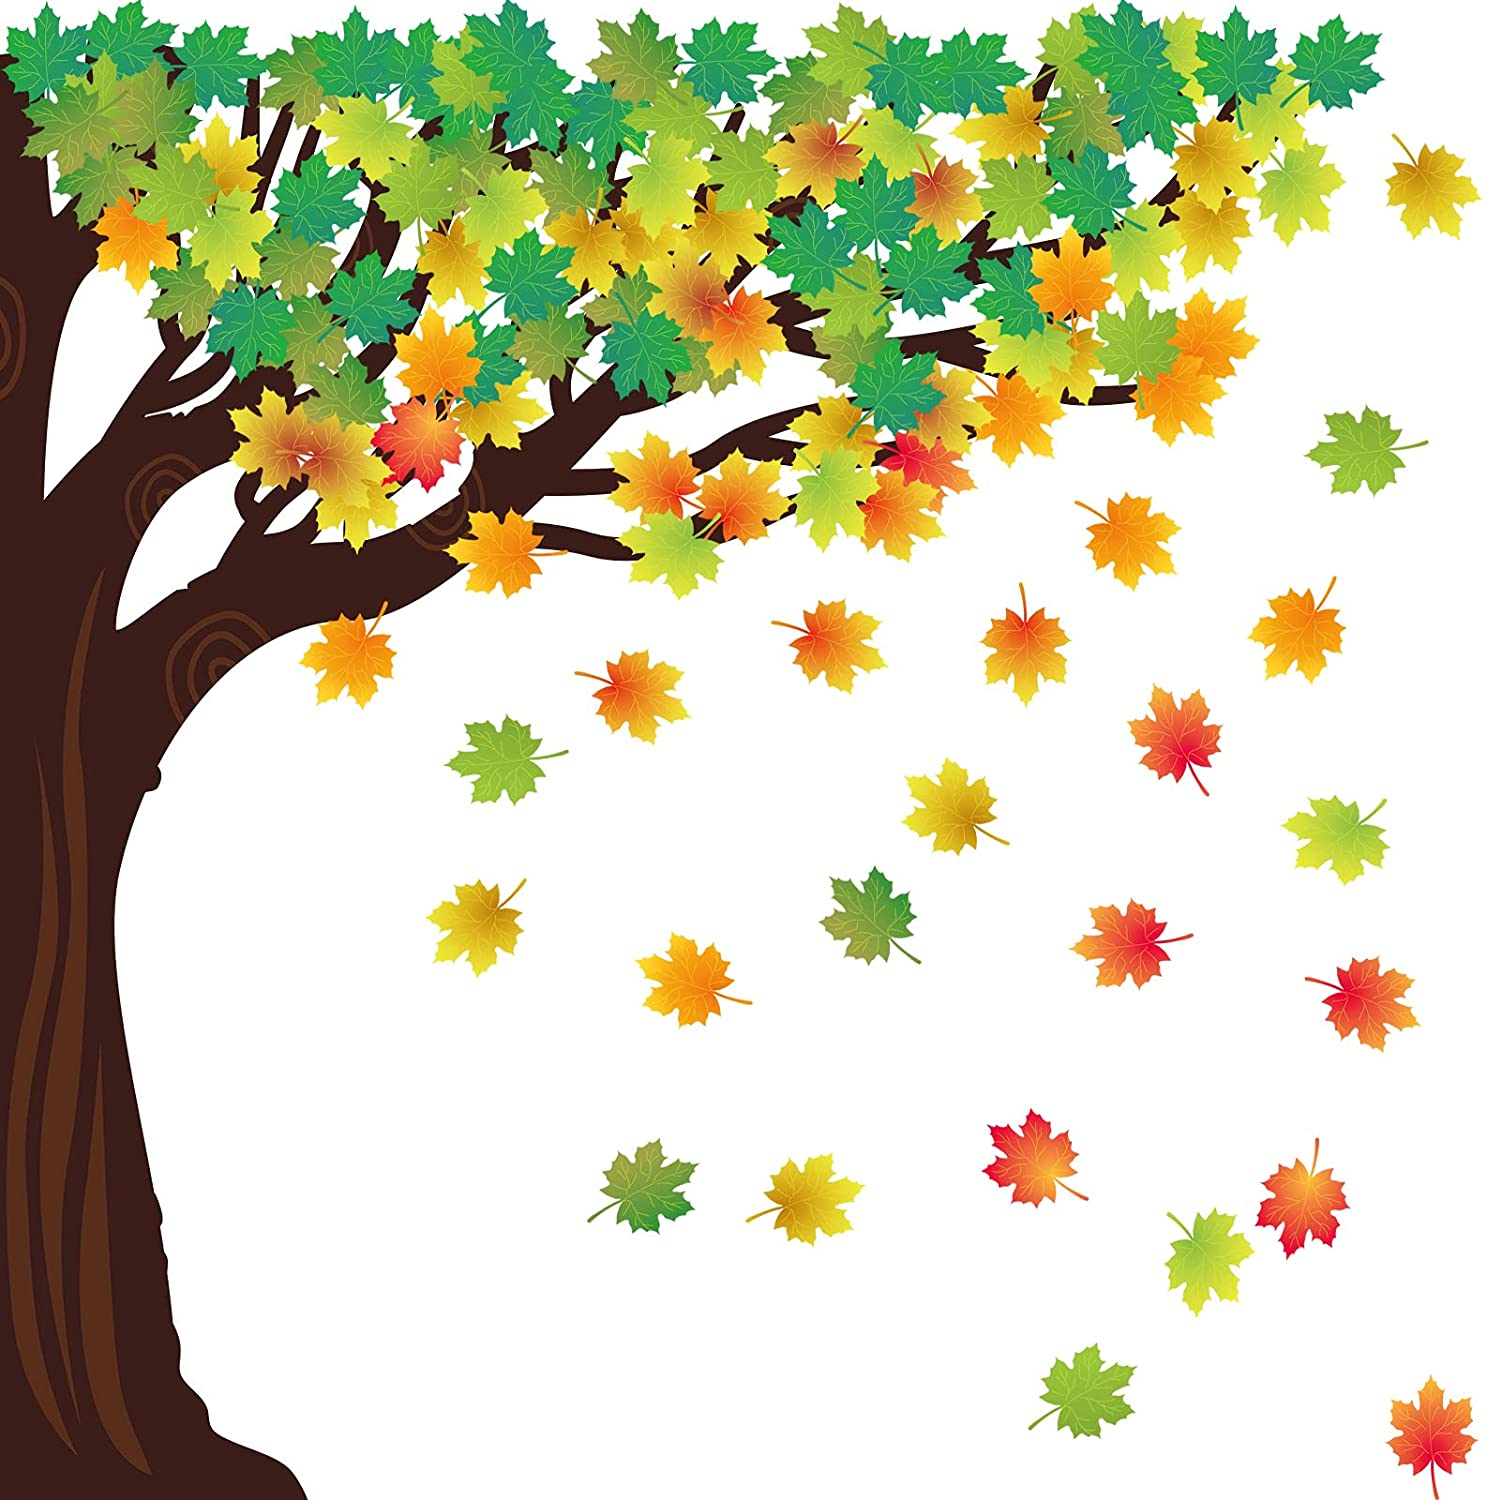 128 Pieces Classroom Tree Bulletin Board Decor Woodland Whimsy Bulletin Board Autumn Thanksgiving Seasonal Tree Cutout with Fall Maple Leaves Cutouts and Green Leaves Cutout for Chalkboard Wall Decor